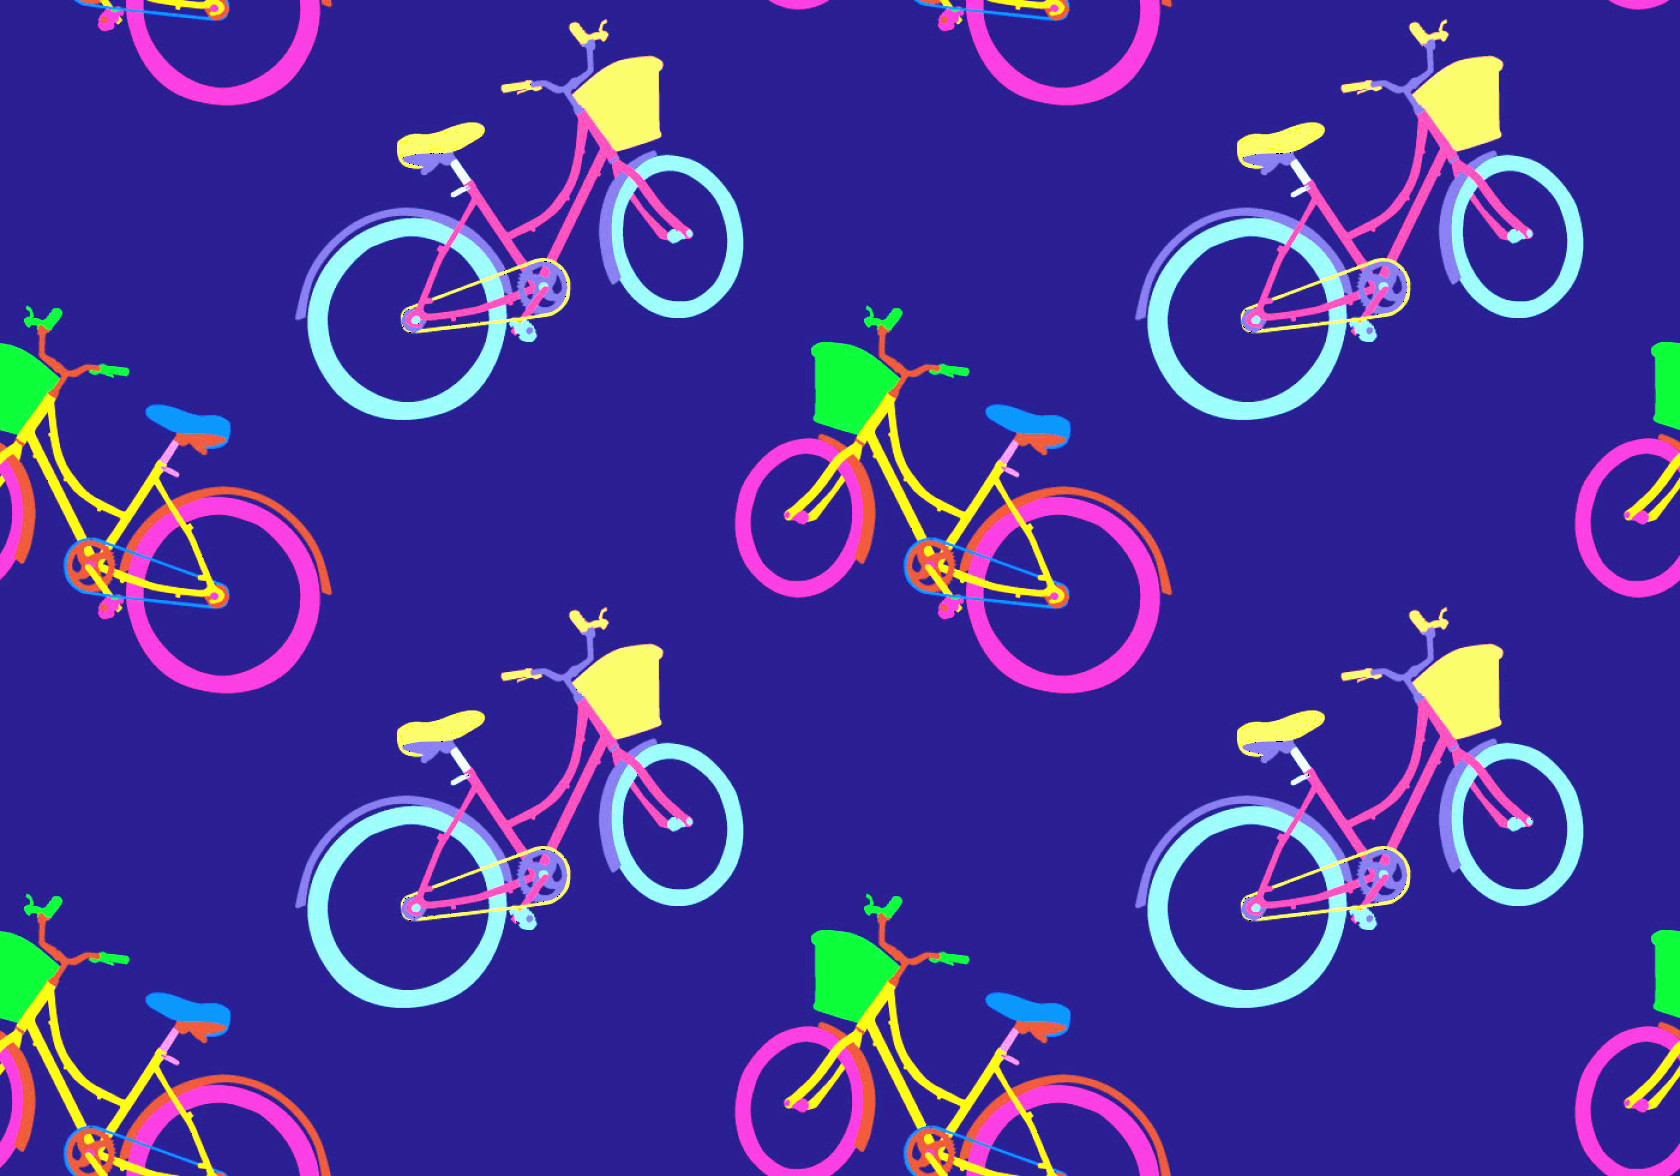 Bicycle Vector Artwork Of Patterns: Free Bicicleta Seamless Pattern Vector Illustration